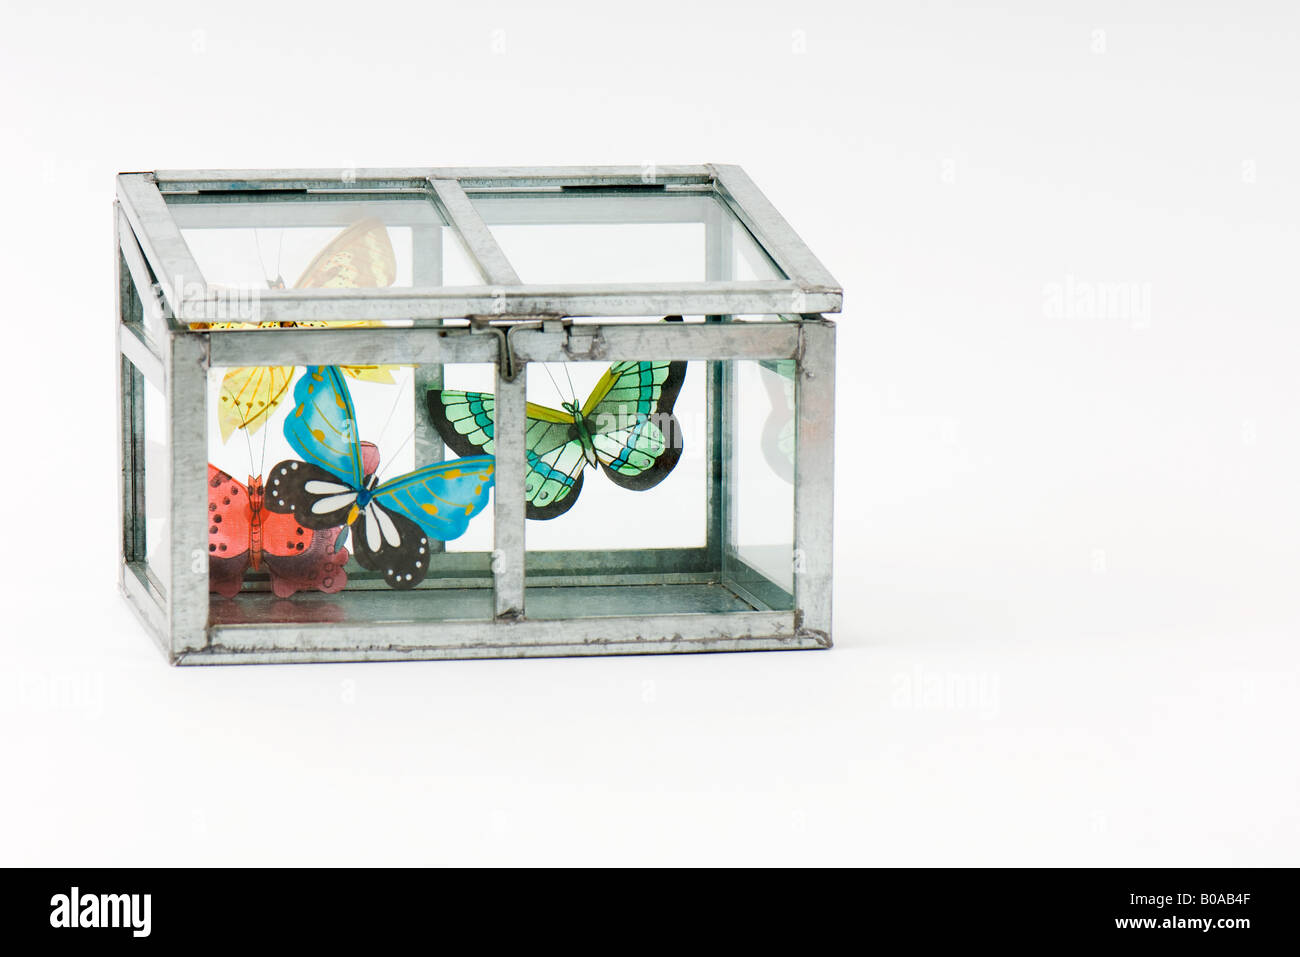 Fake butterflies inside closed glass box - Stock Image